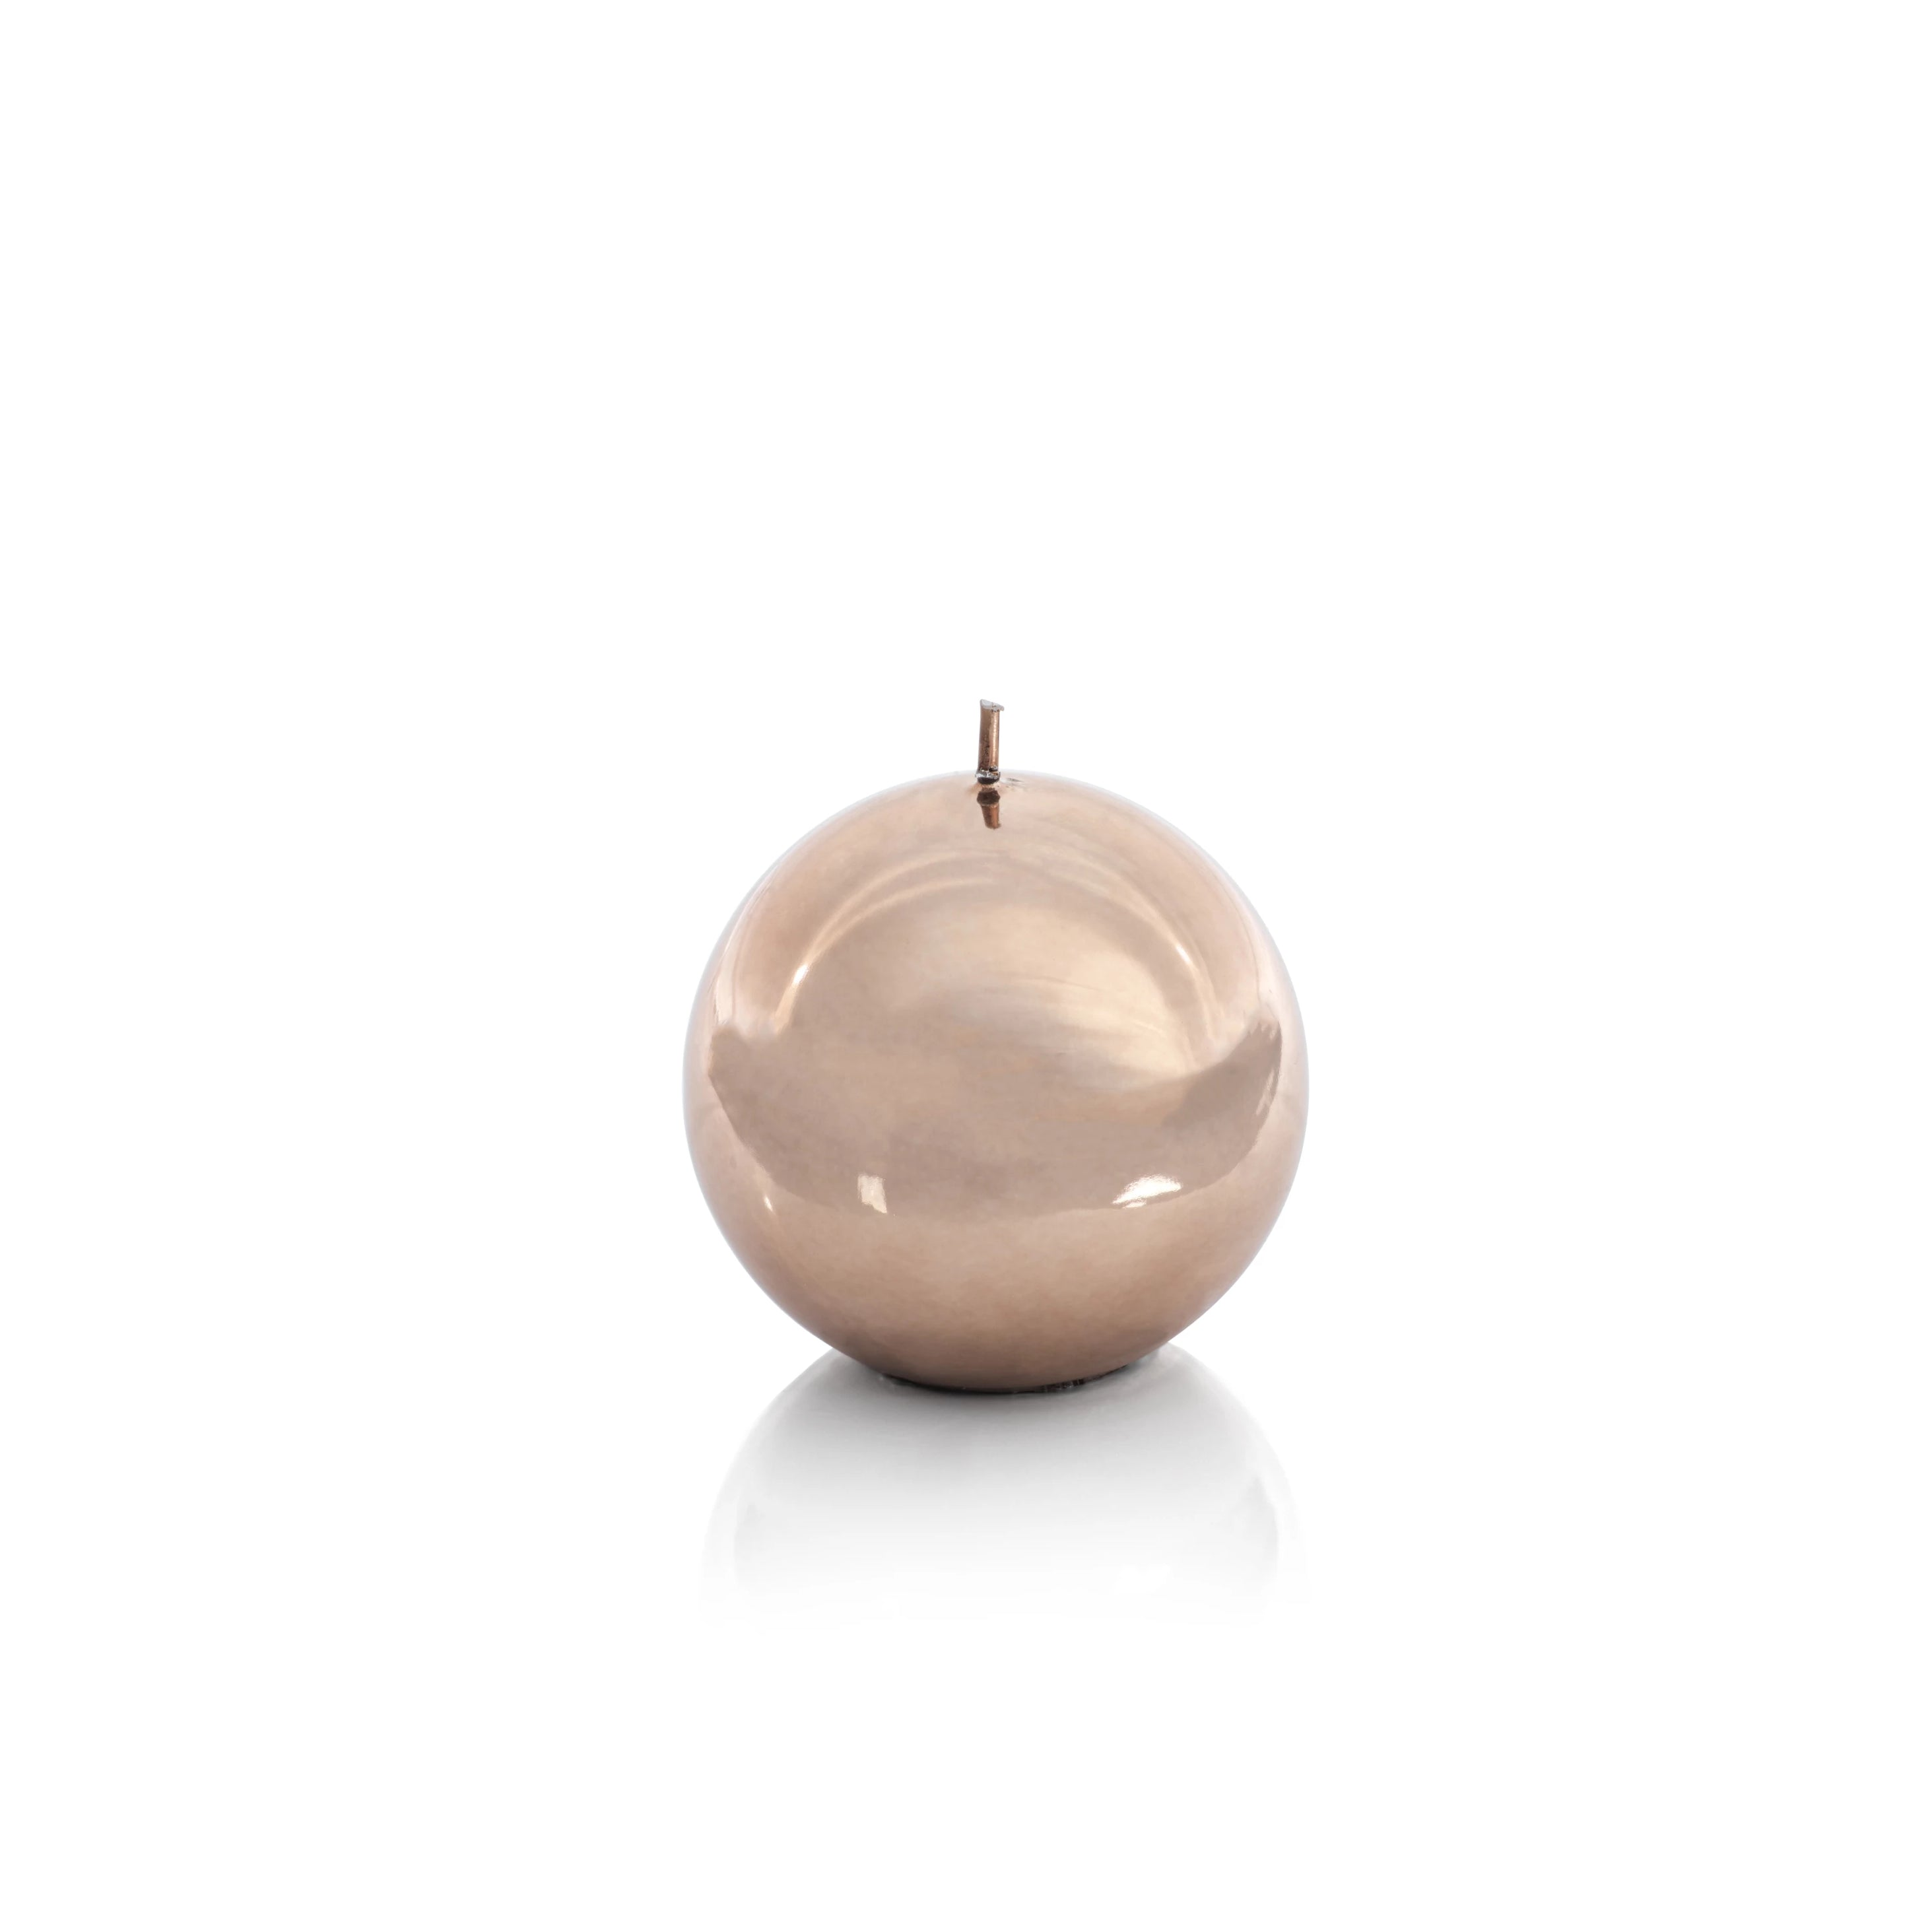 Shiny Metallic Ball Candle - Gold Bronze - CARLYLE AVENUE